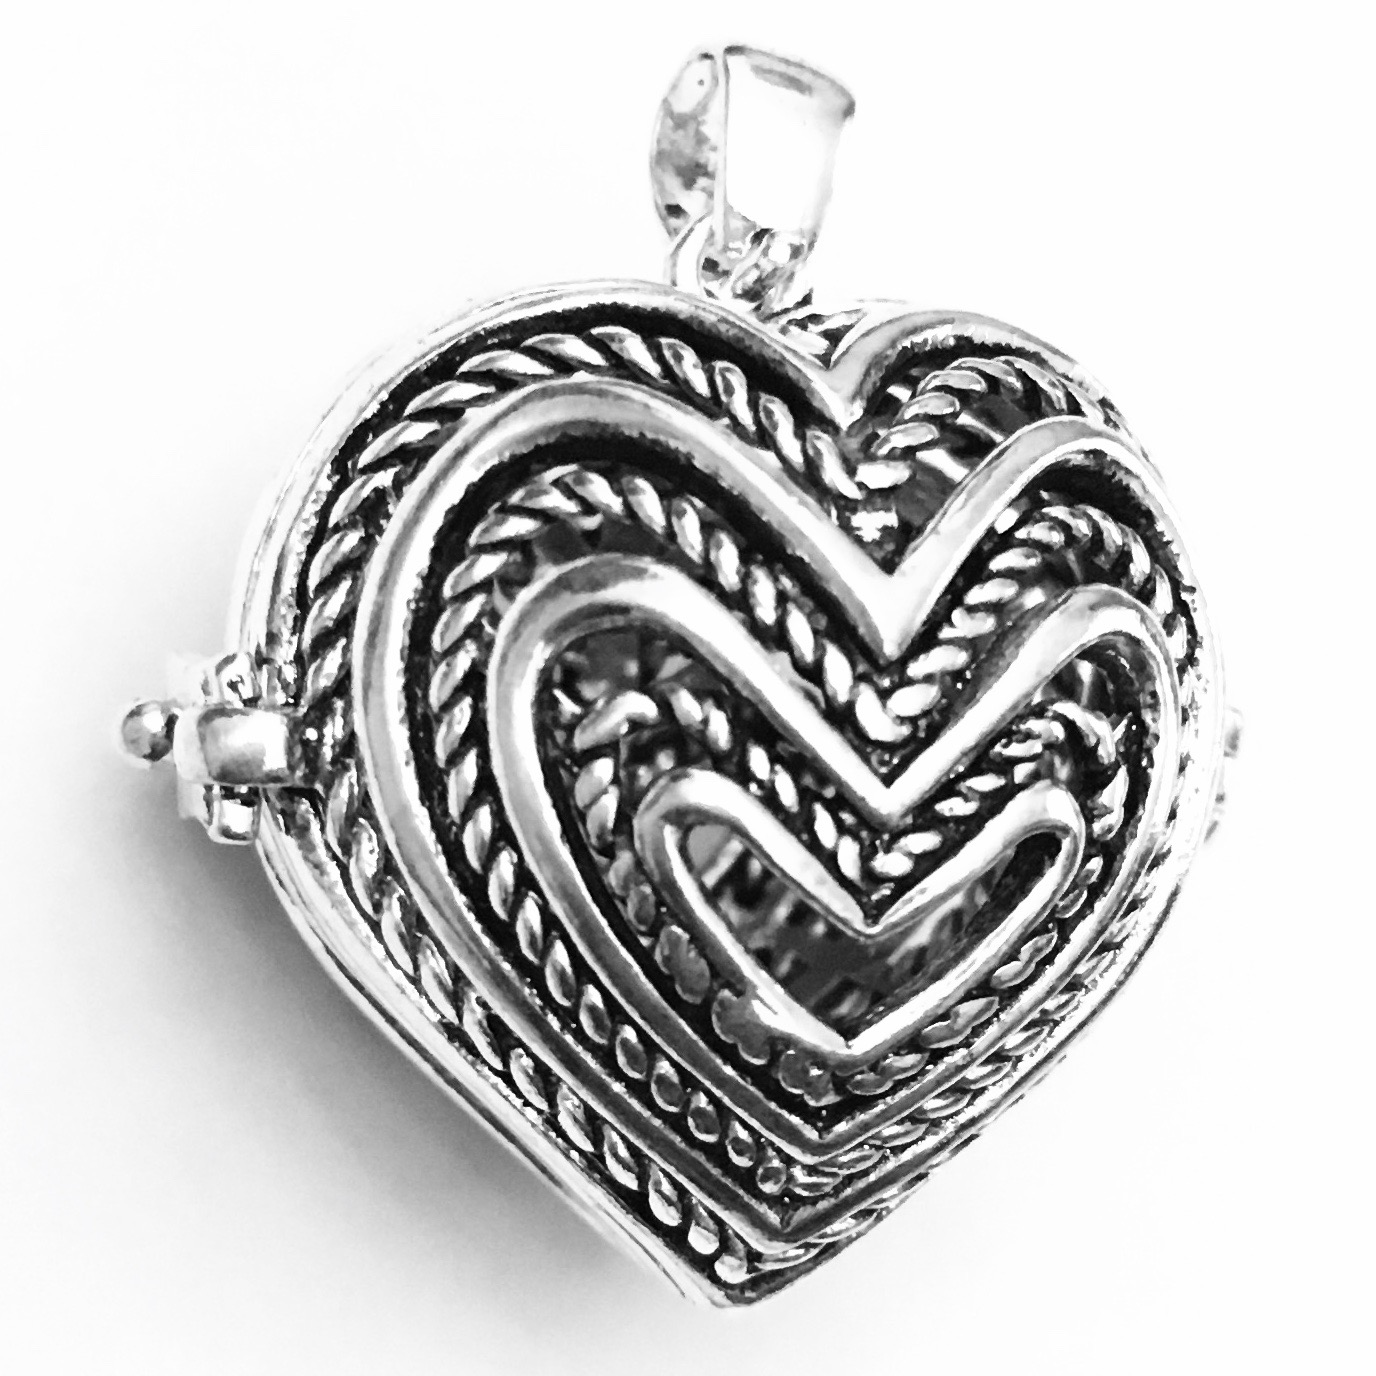 Turkish Sterling Silver Perfume Diffuser Locket 25 mm